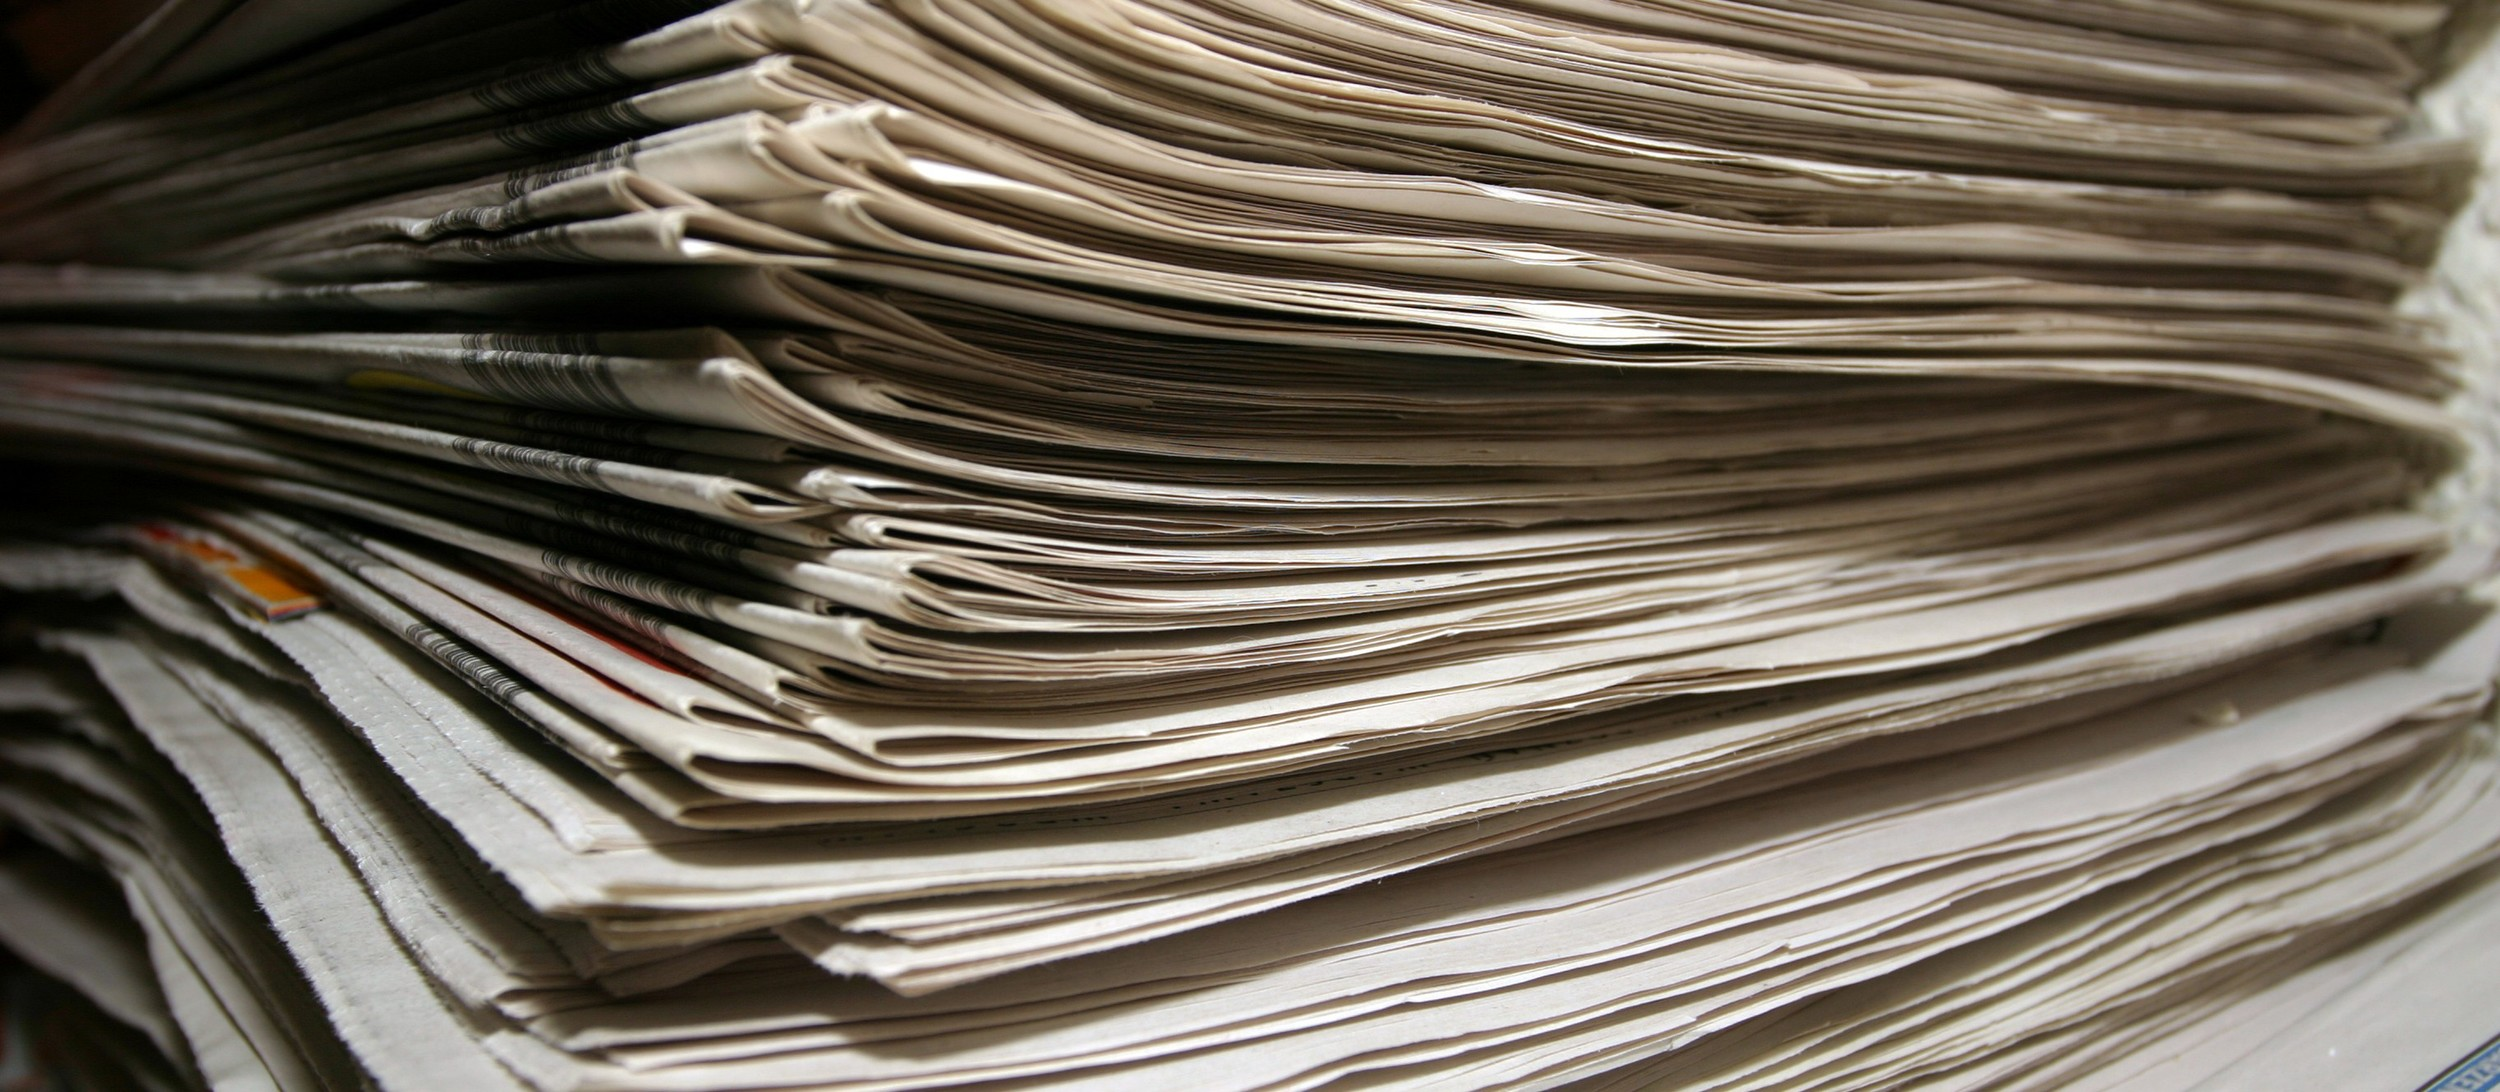 newspapers-stack-photostock.jpg